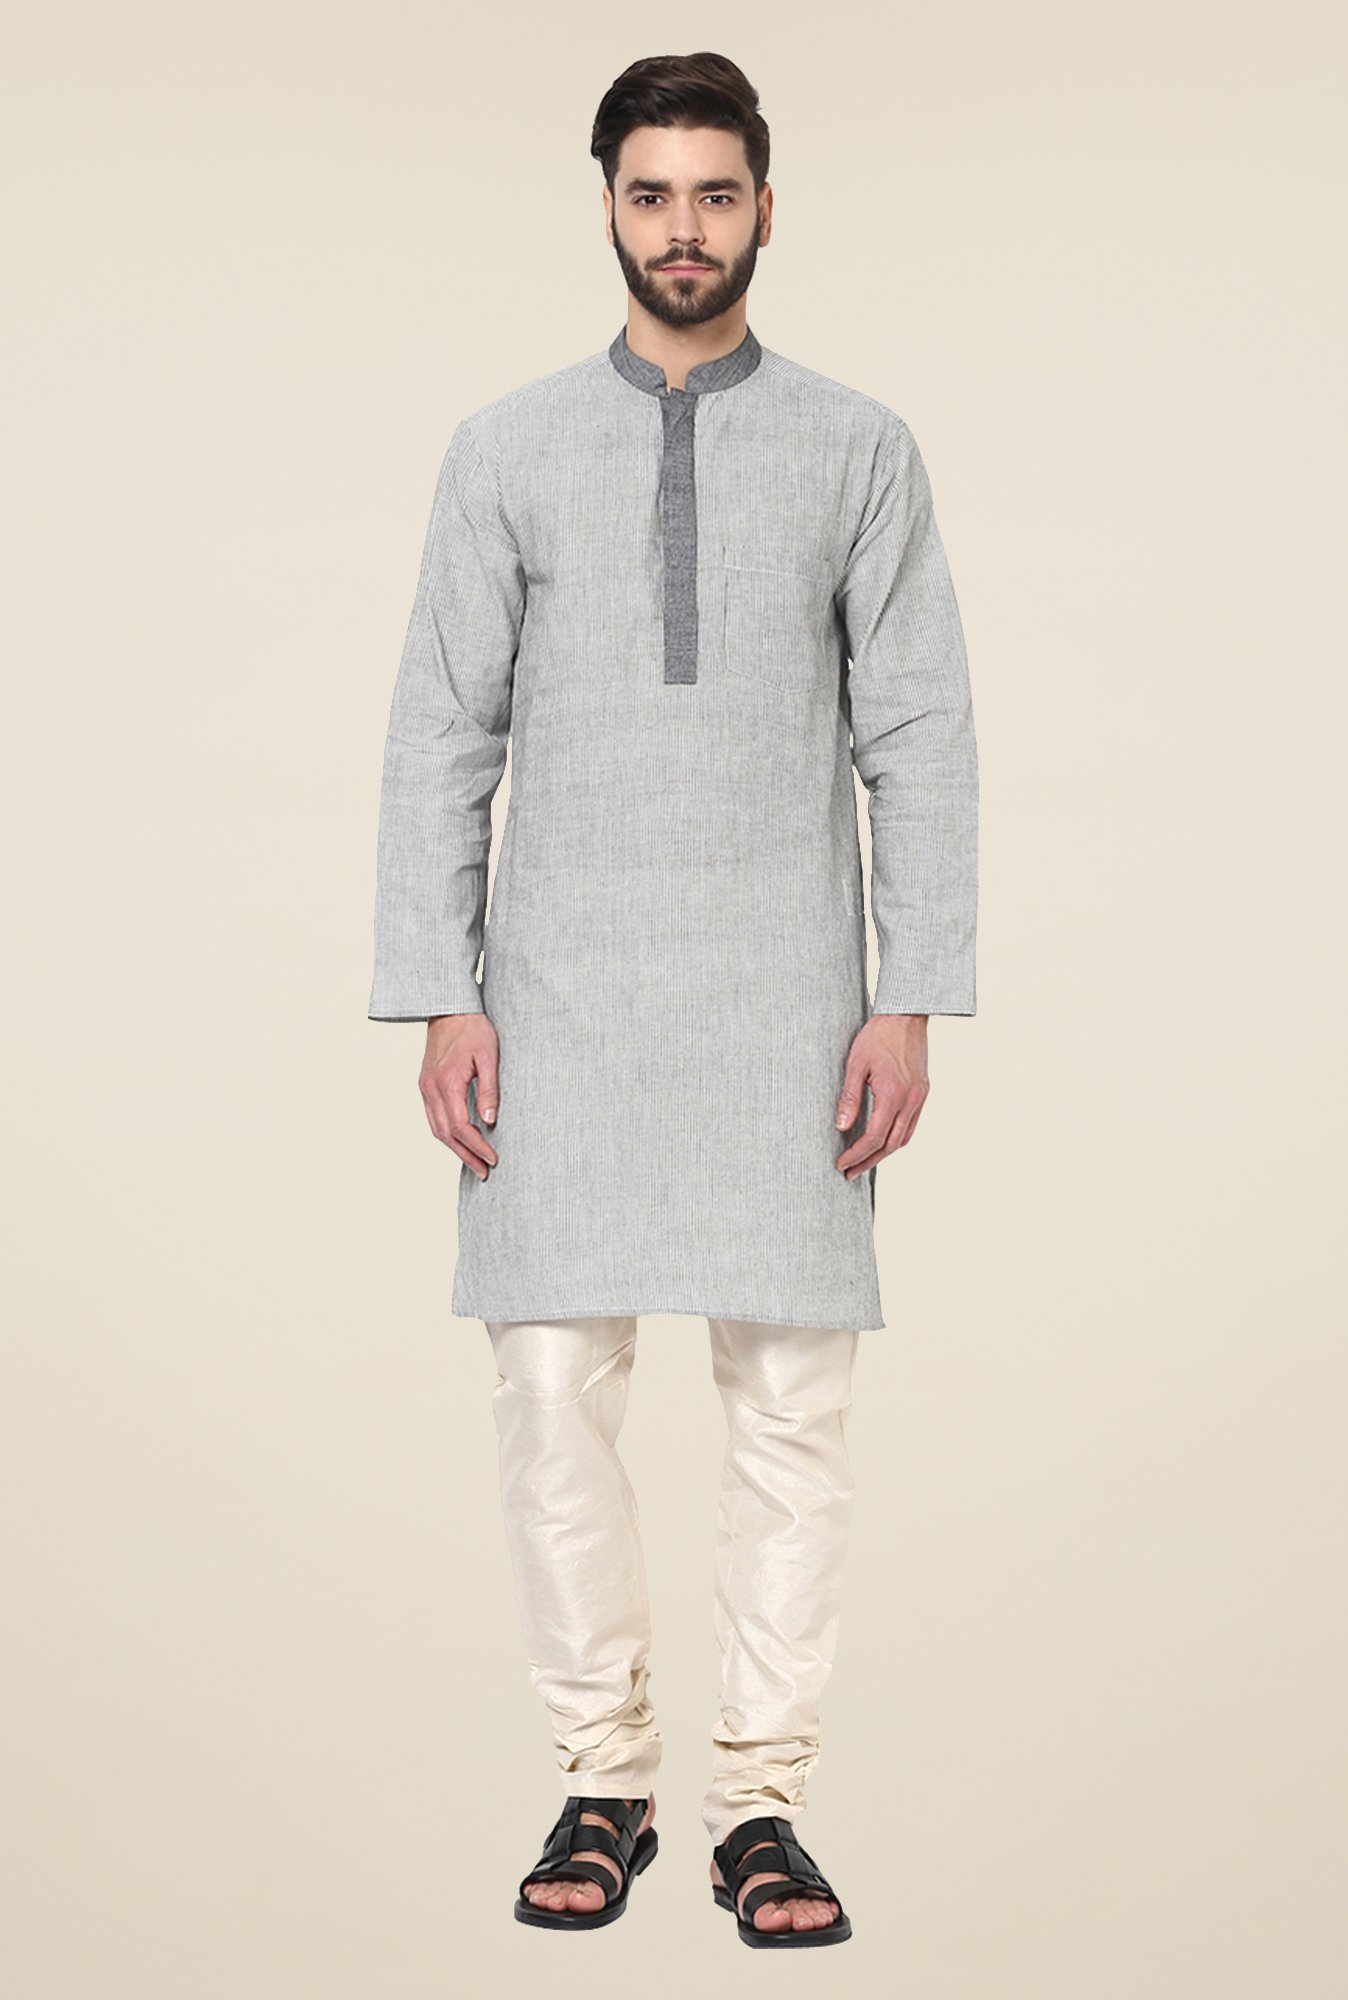 Yepme Bruce Grey Striped Kurta